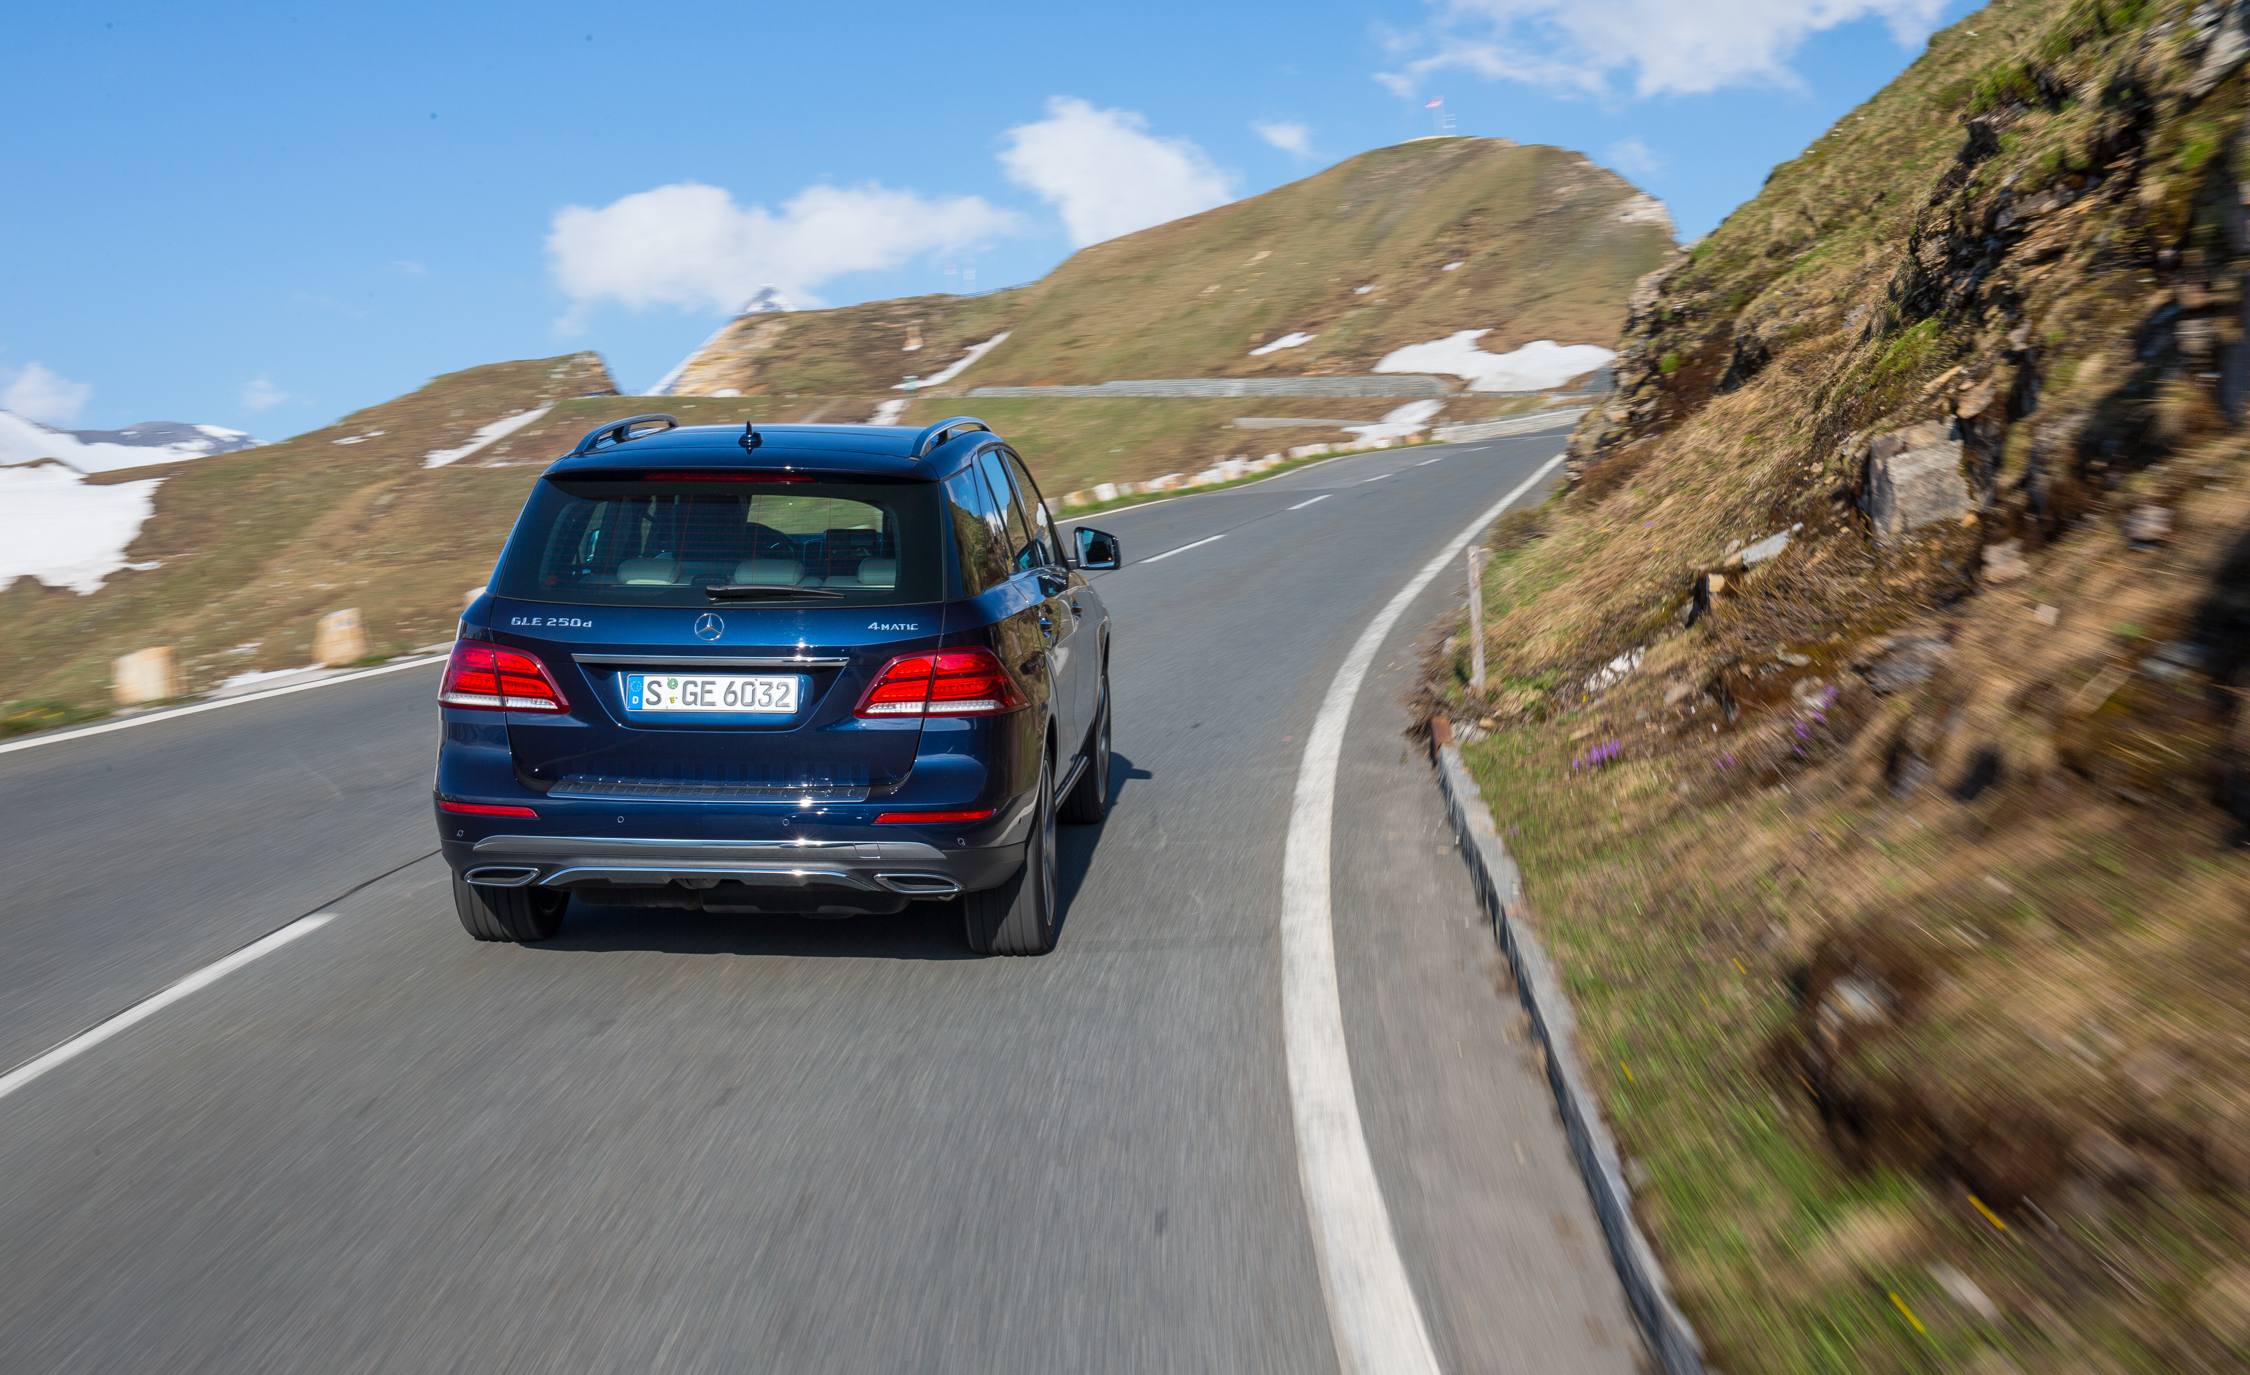 2016 Mercedes Benz GLE250d 4MATIC (Euro Spec) (Photo 13 of 43)